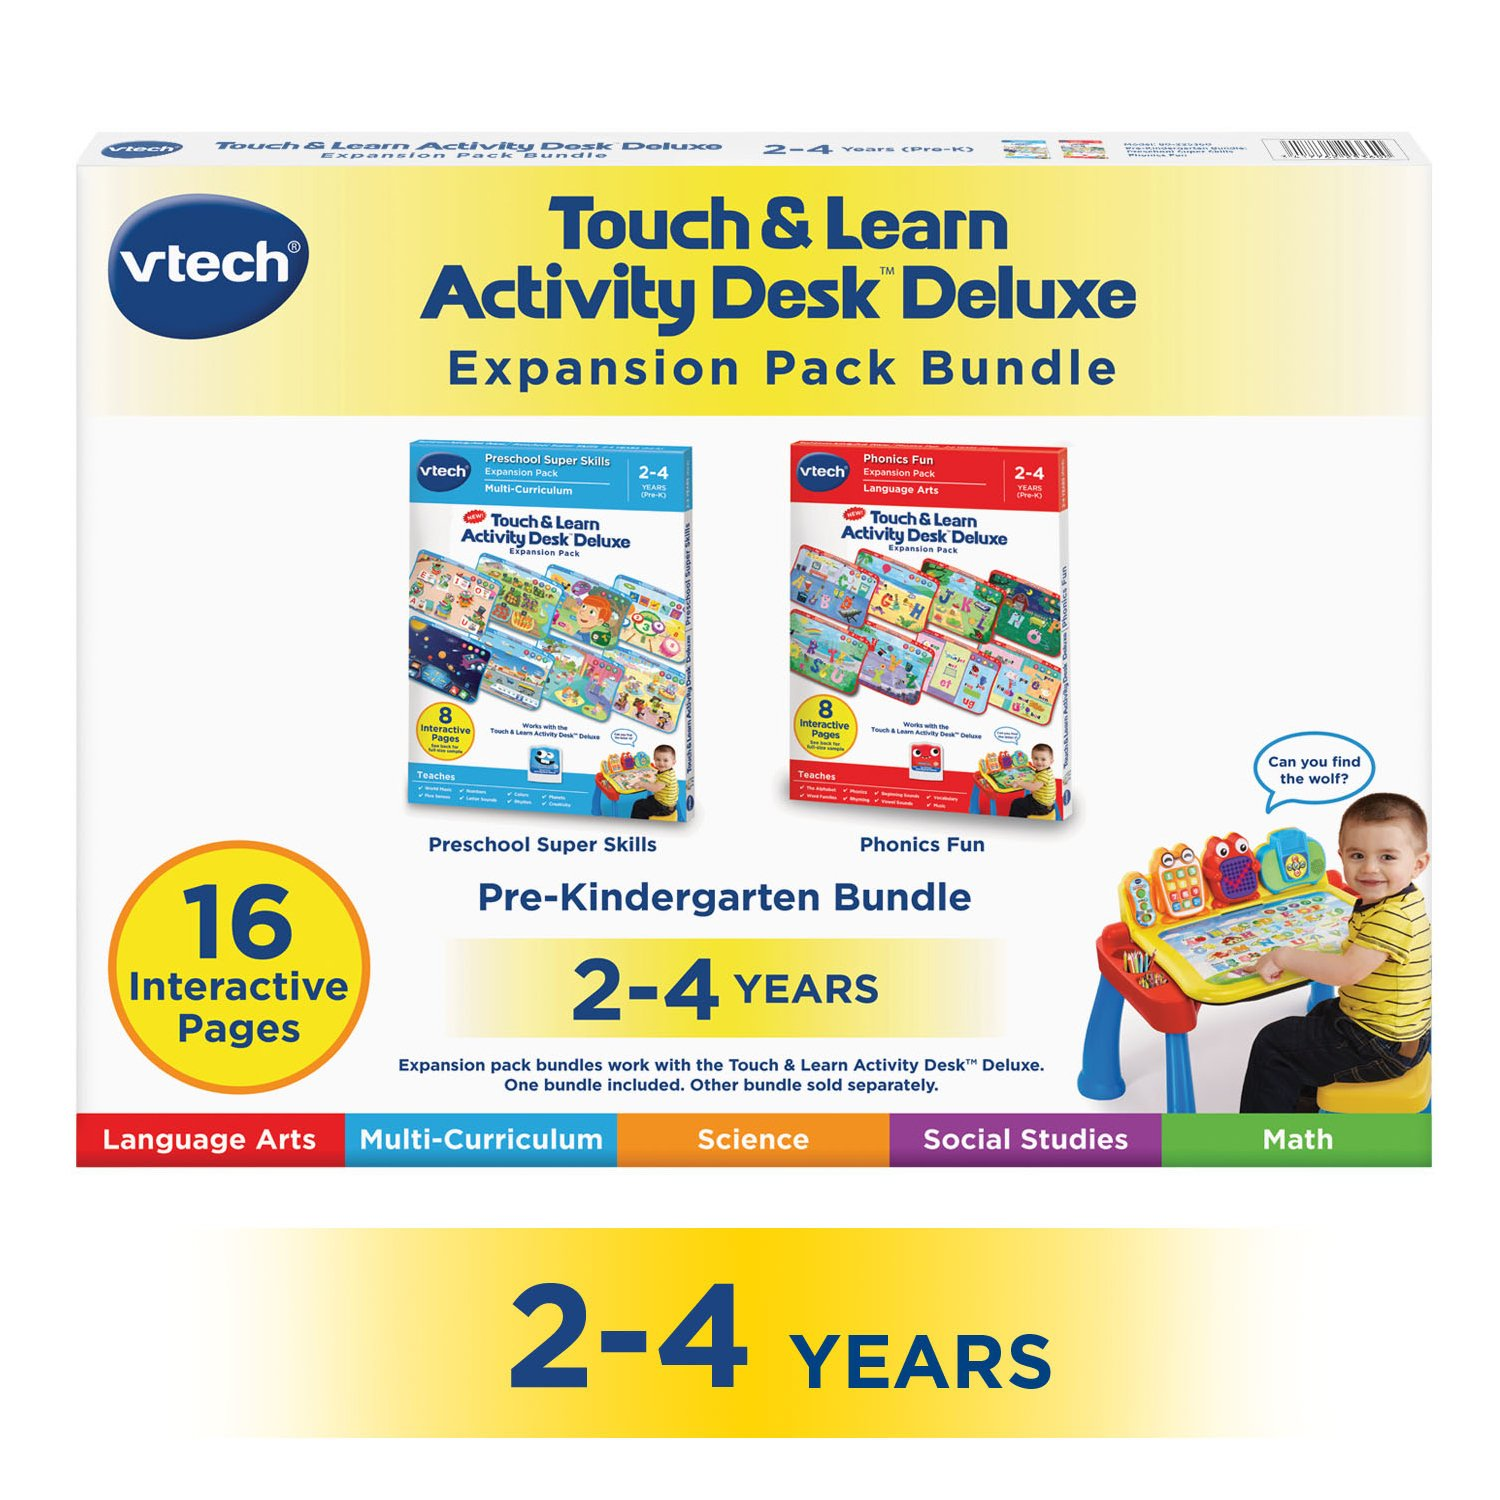 VTech Touch & Learn Activity Desk Deluxe 2-in-1 Preschool Bundle Expansion Pack for Age 2-4 by VTech (Image #1)